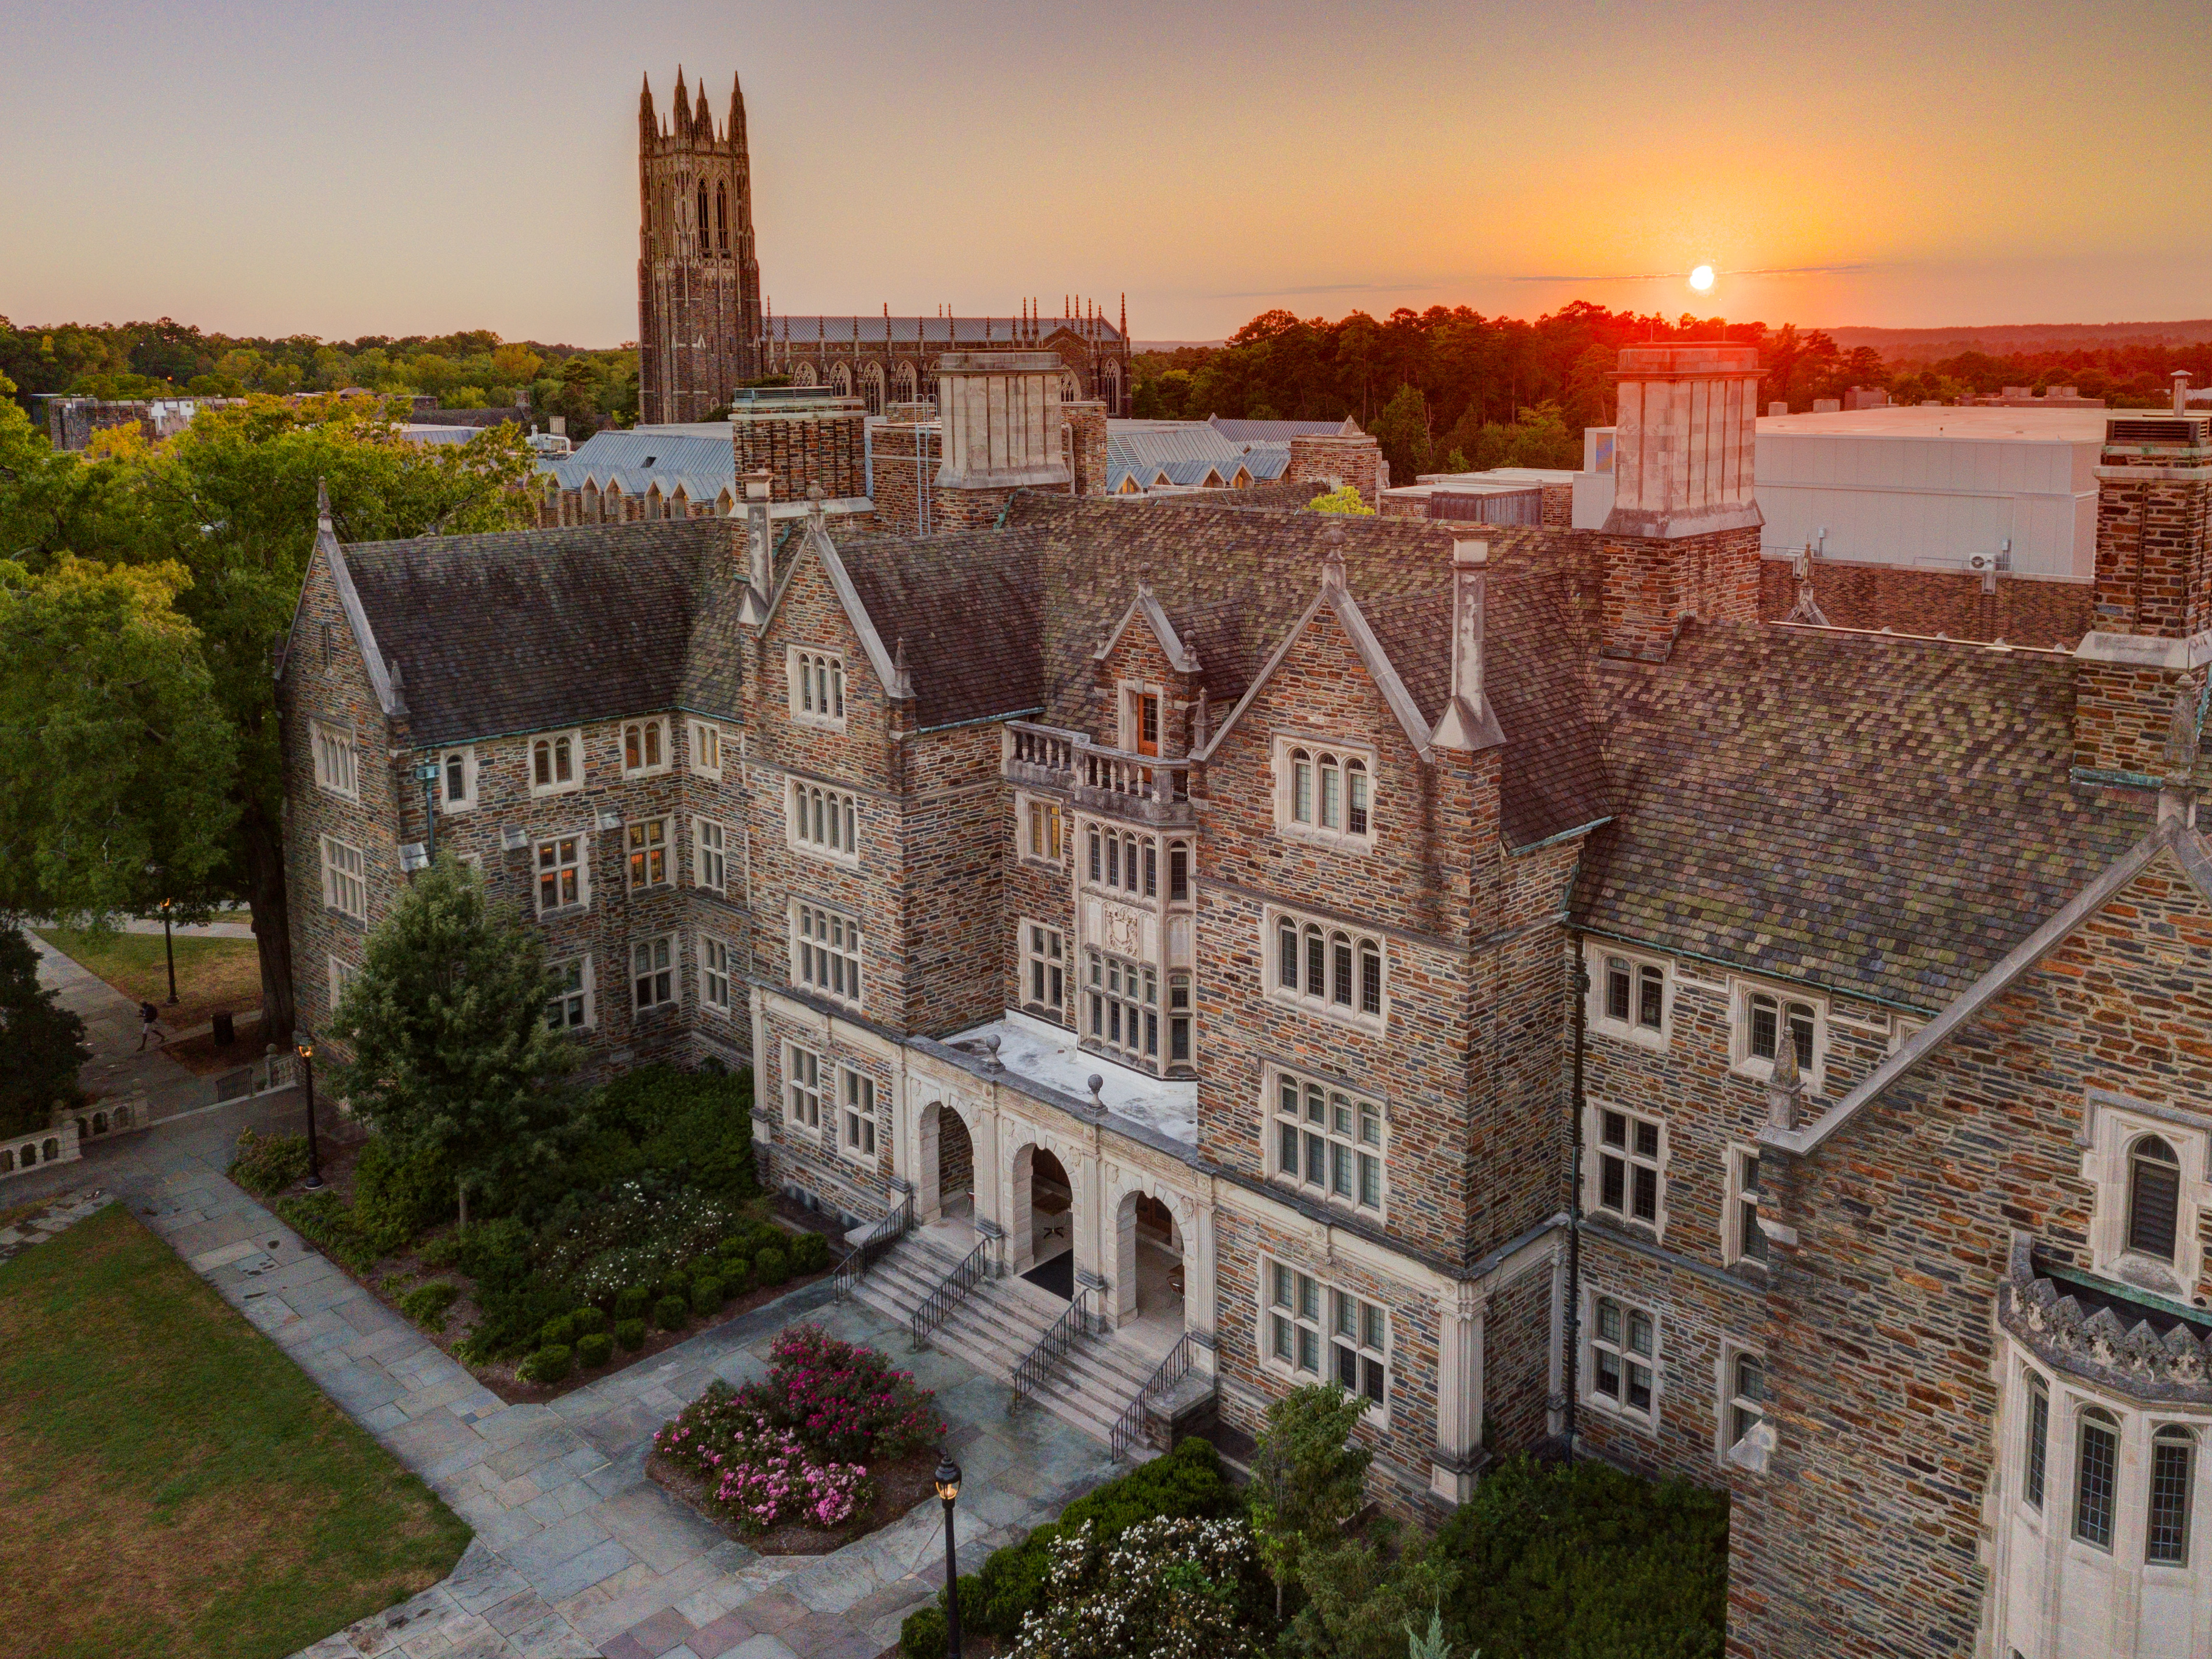 A picture of the sun setting over the Duke University chapel and other buildings on campus.